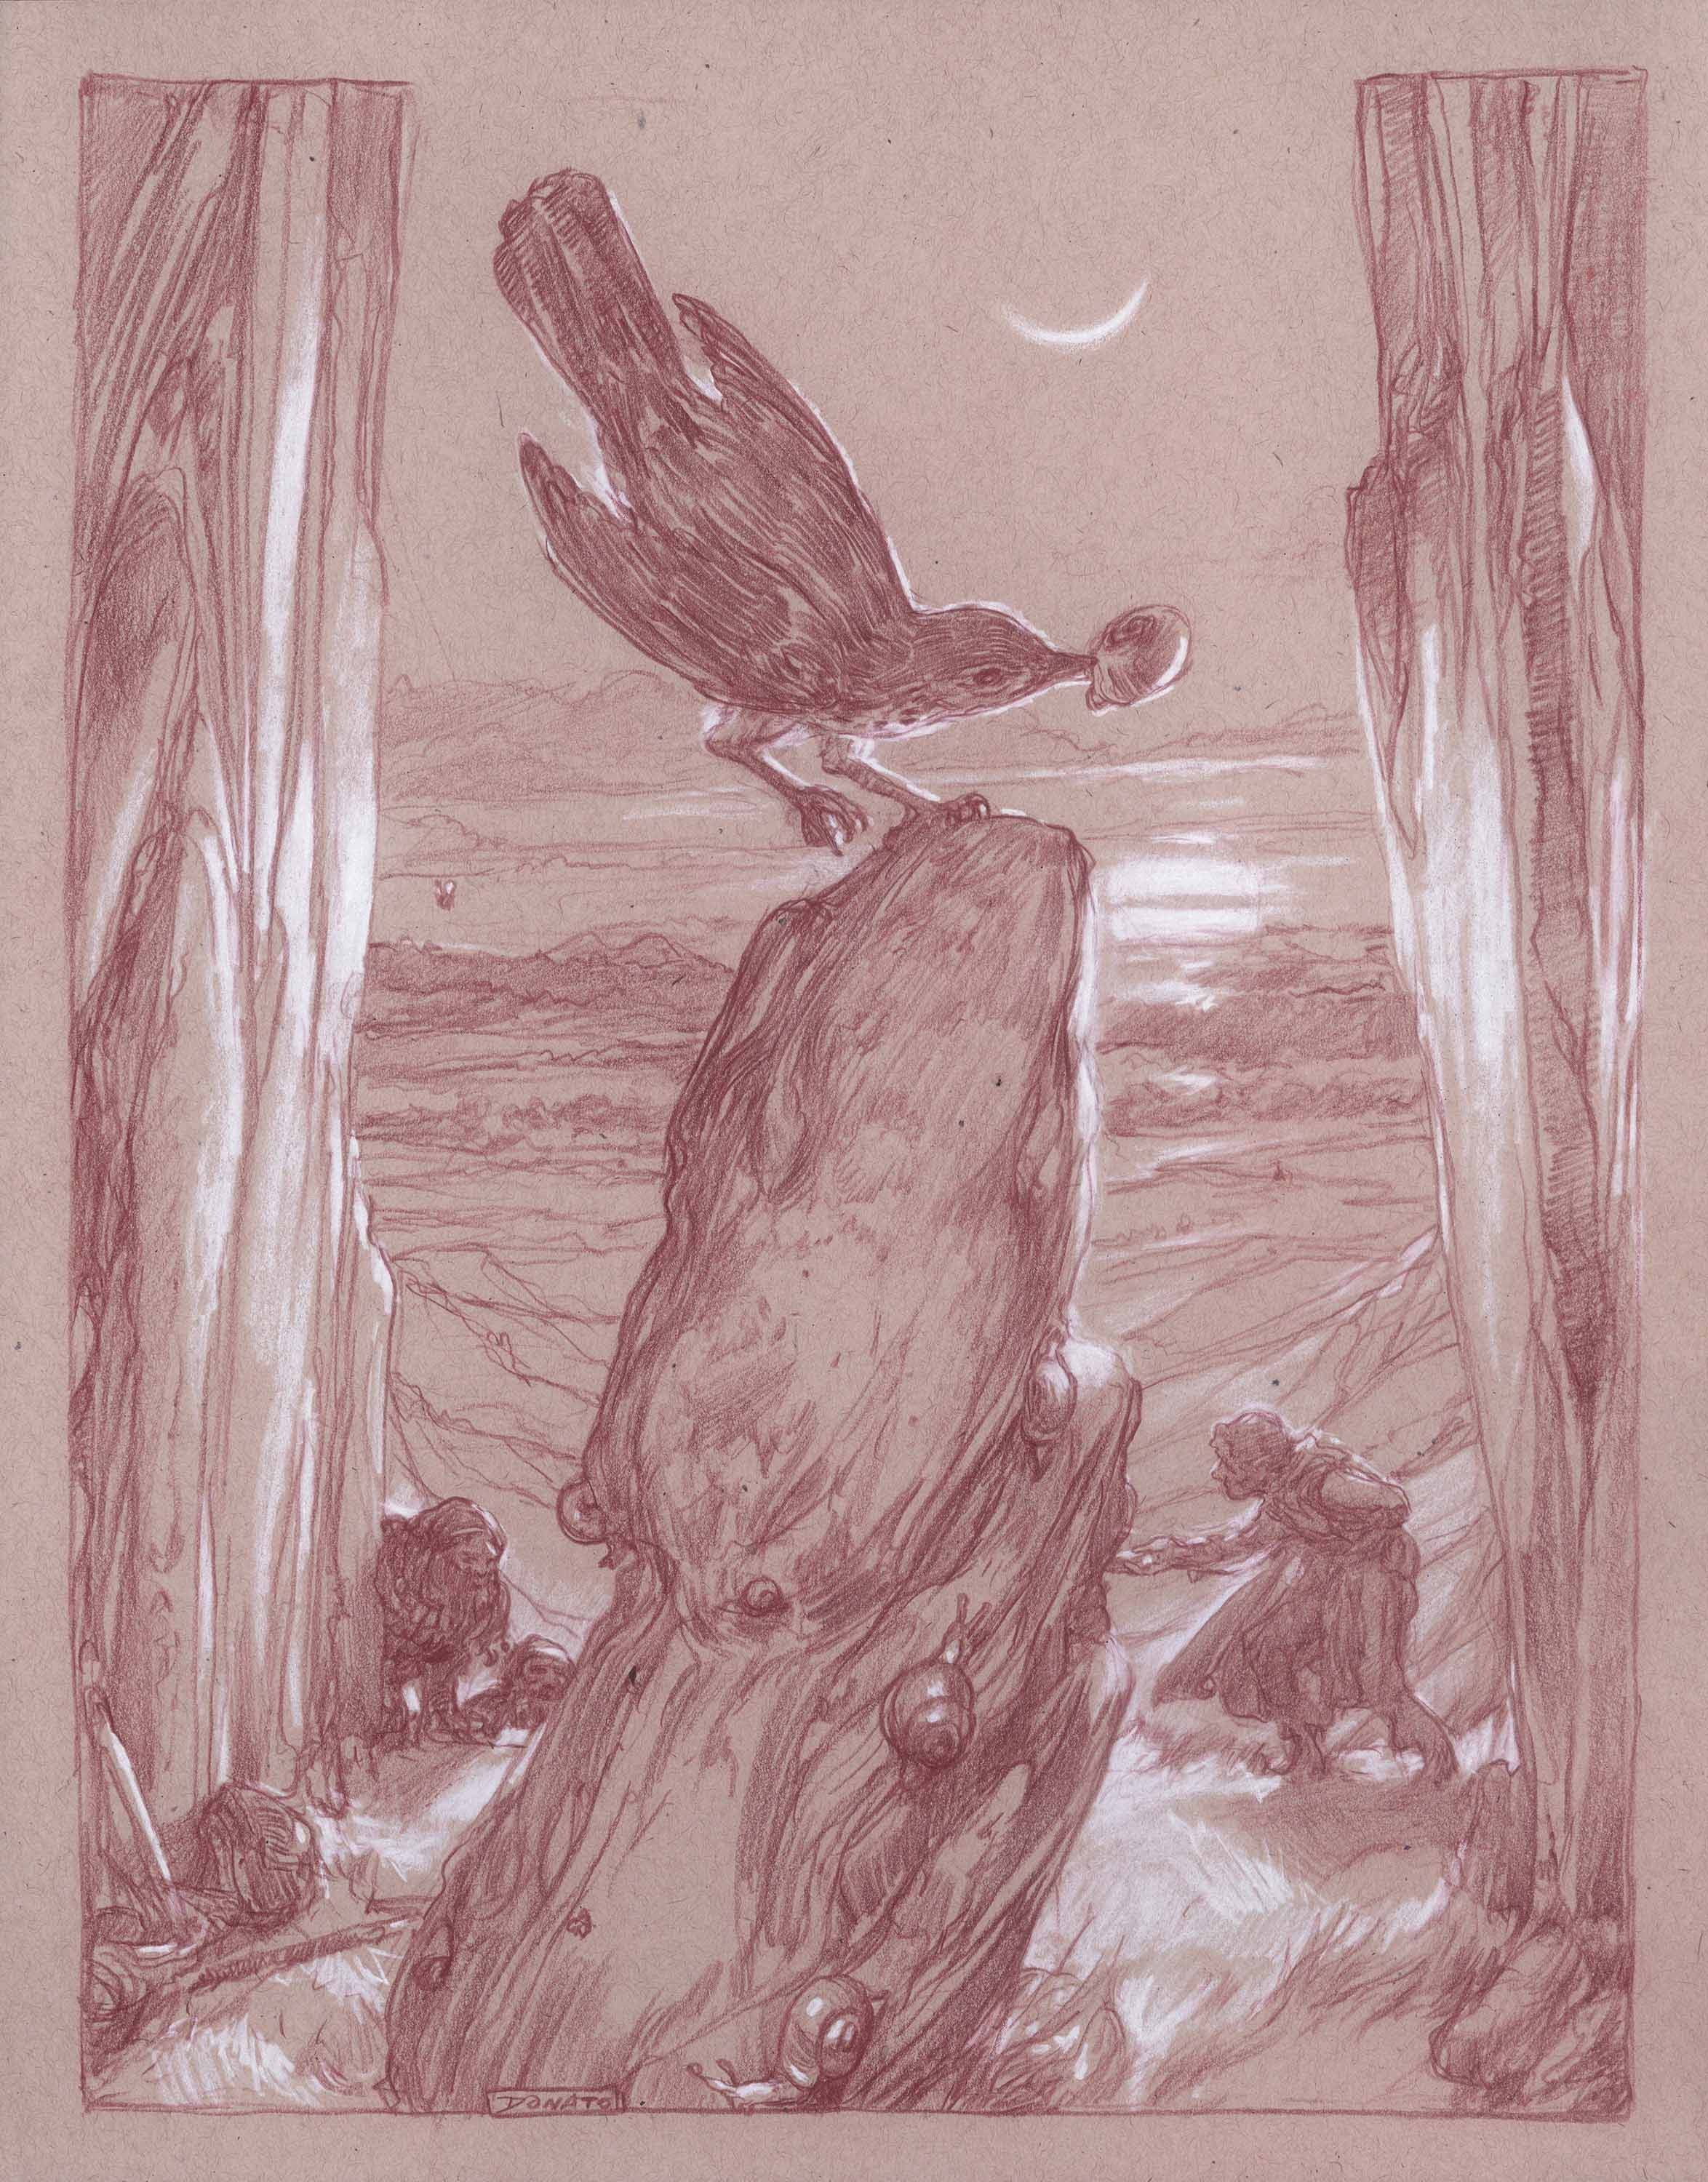 "When the Thrush Knocks 14"" x 11""  Watercolor Pencil and Chalk on Toned paper 2015 private collection"